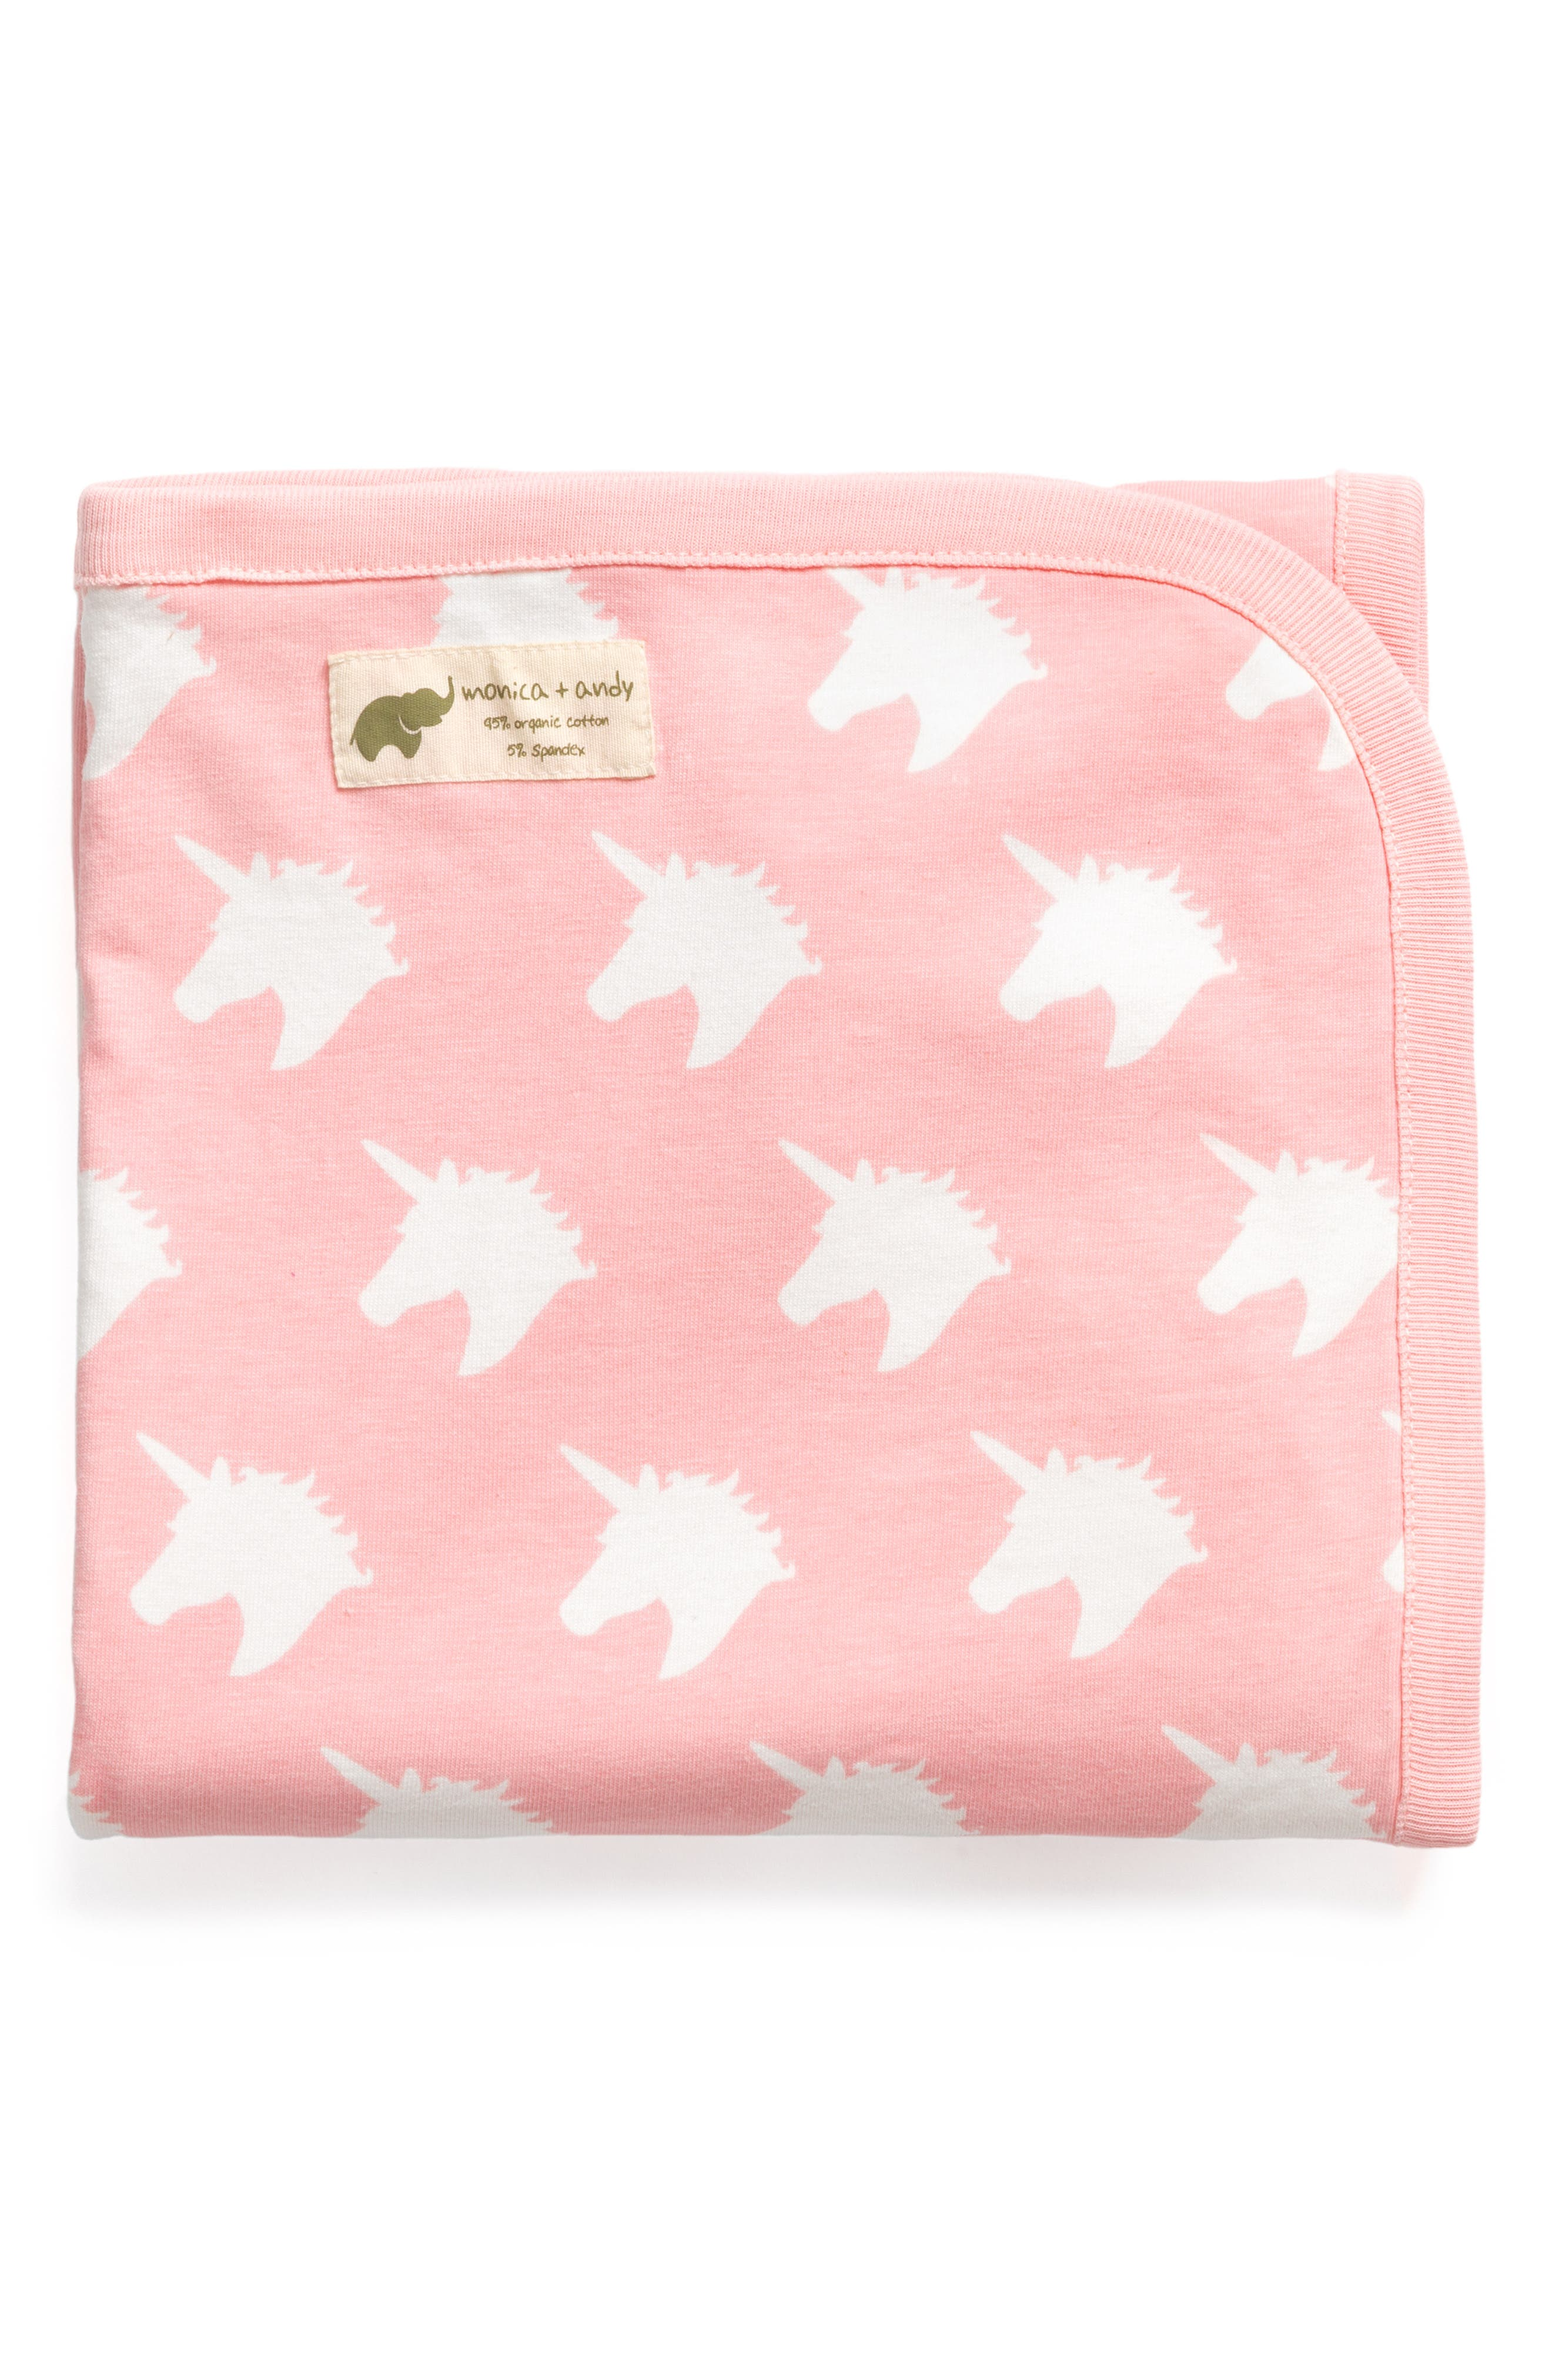 Believe in Unicorns Coming Home Blanket,                         Main,                         color, BELIEVE IN UNICORNS